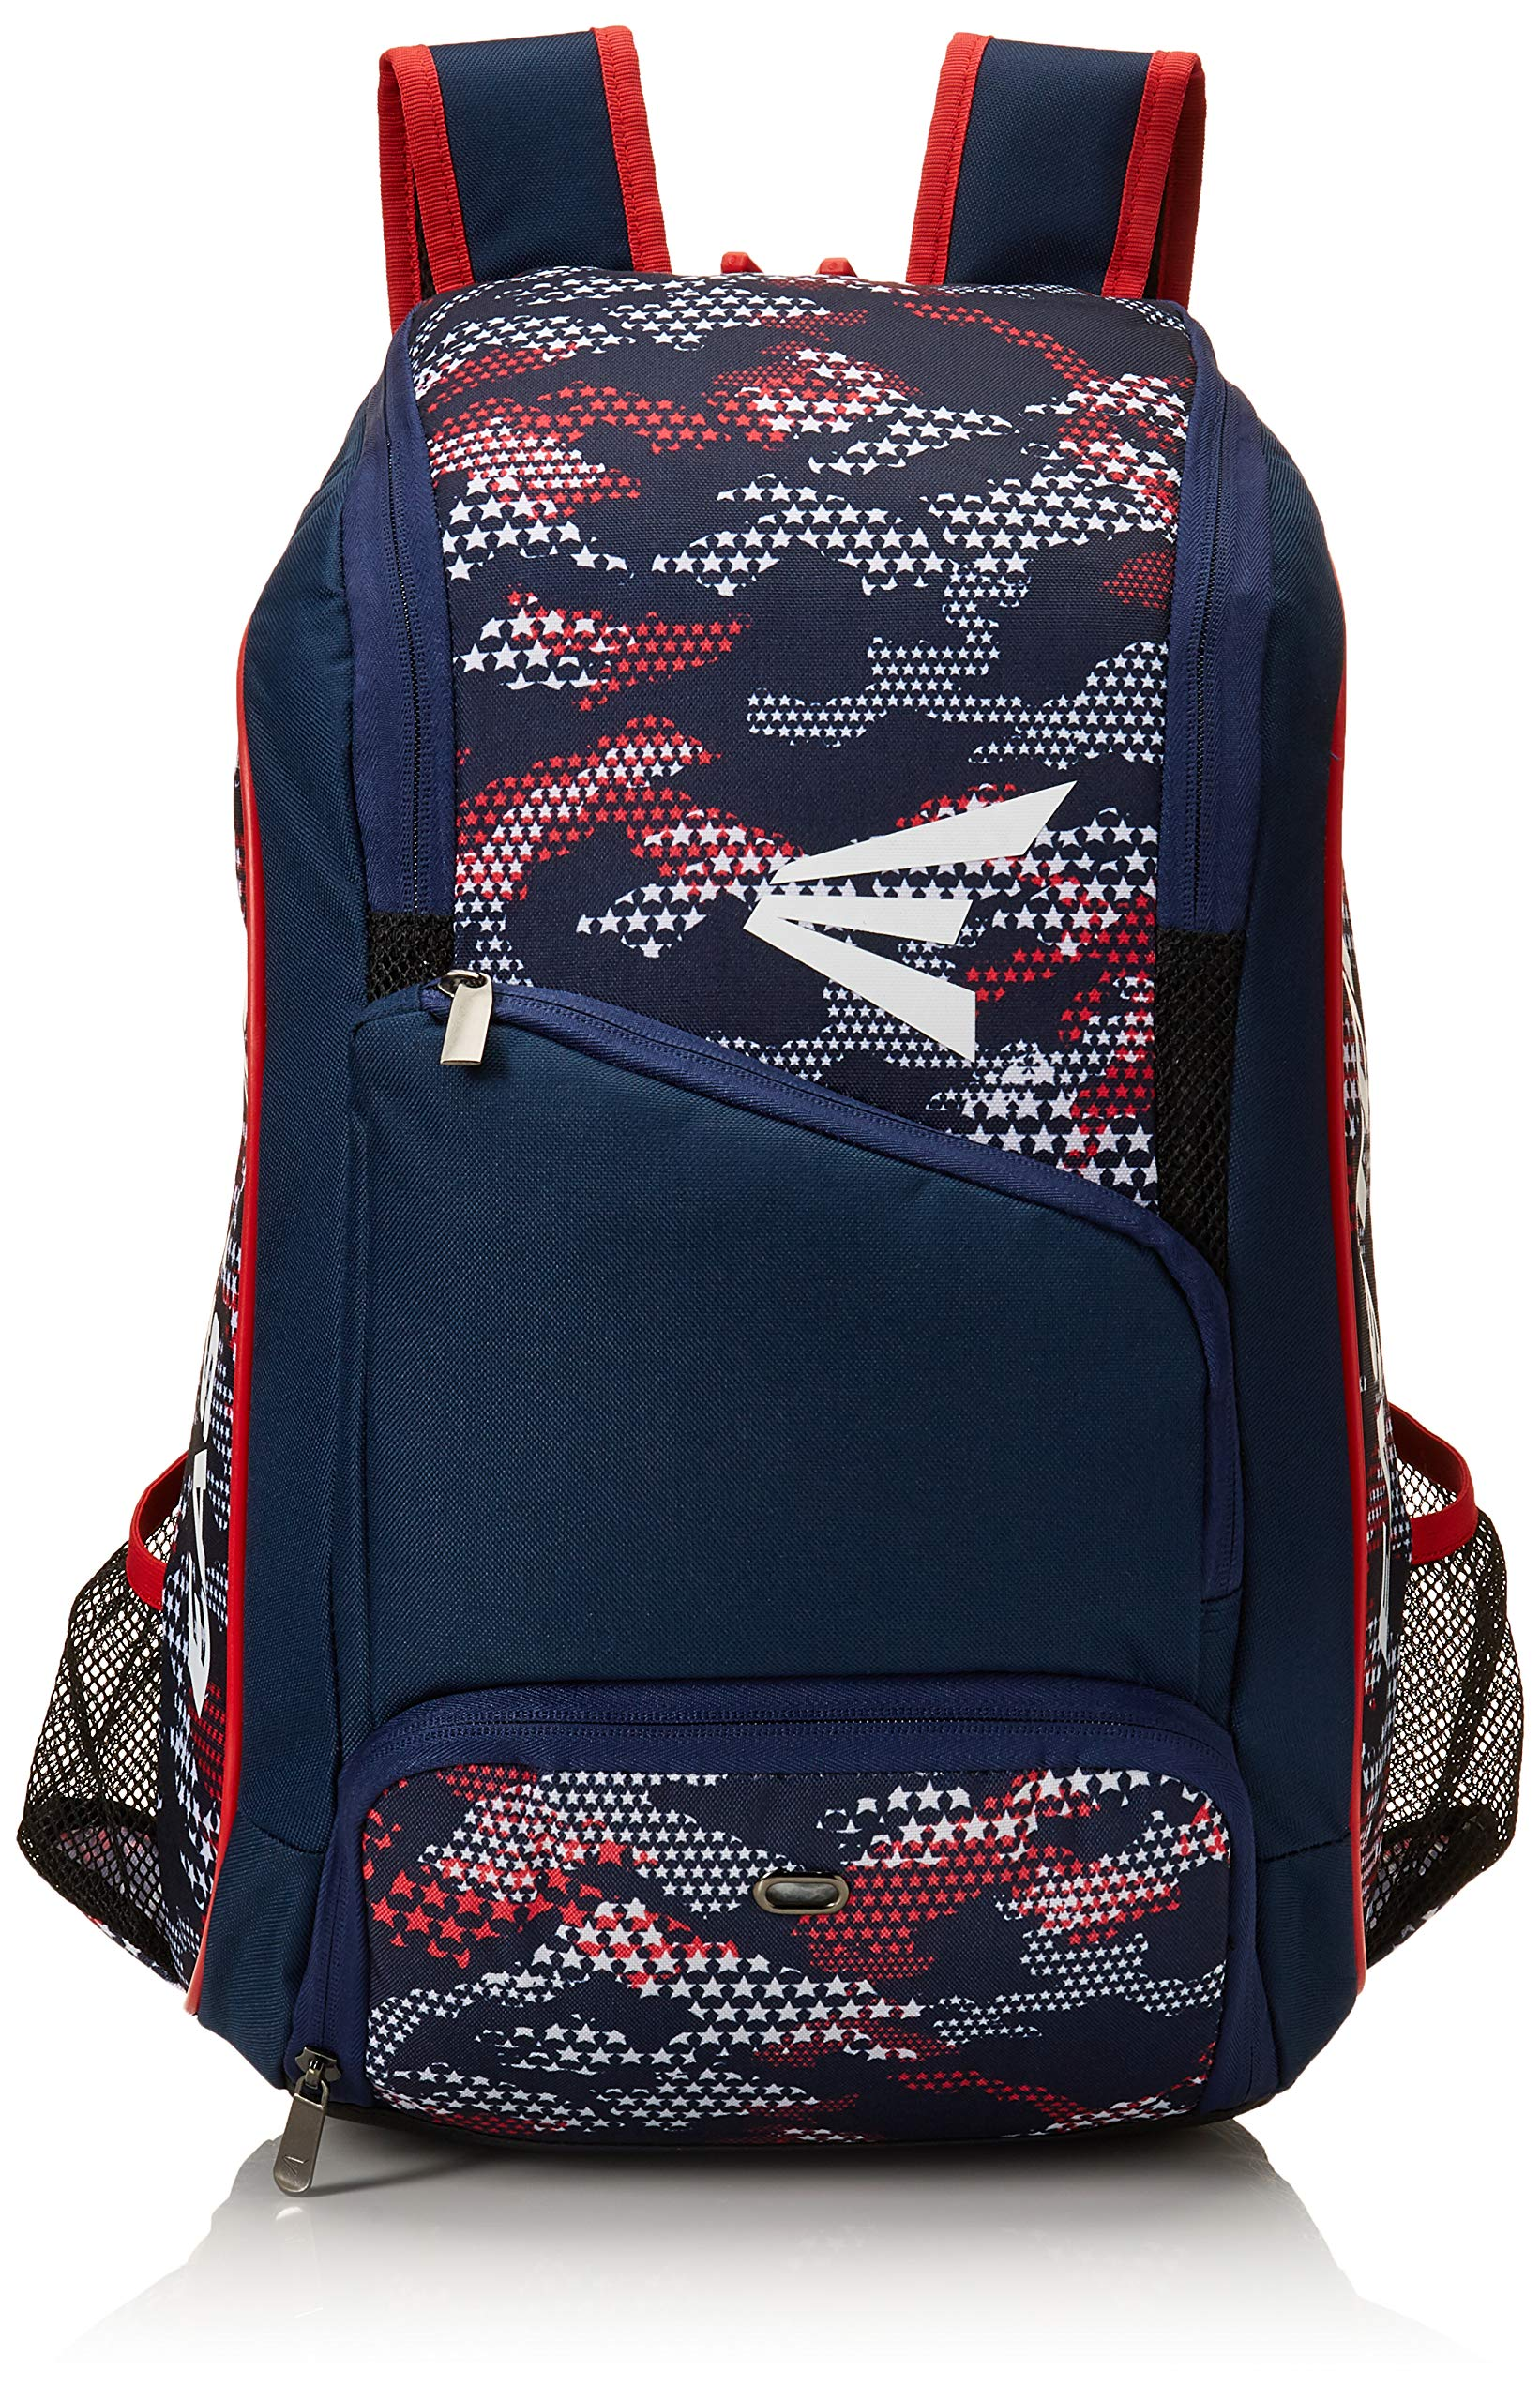 EASTON GAME READY Bat & Equipment Backpack Bag | Baseball Softball | 2019 | Stars & Stripes | 2 Bat Pockets | Vented Main Compartment | Vented Shoe Pocket | Zippered Valuables Pocket | Fence Hook by Easton